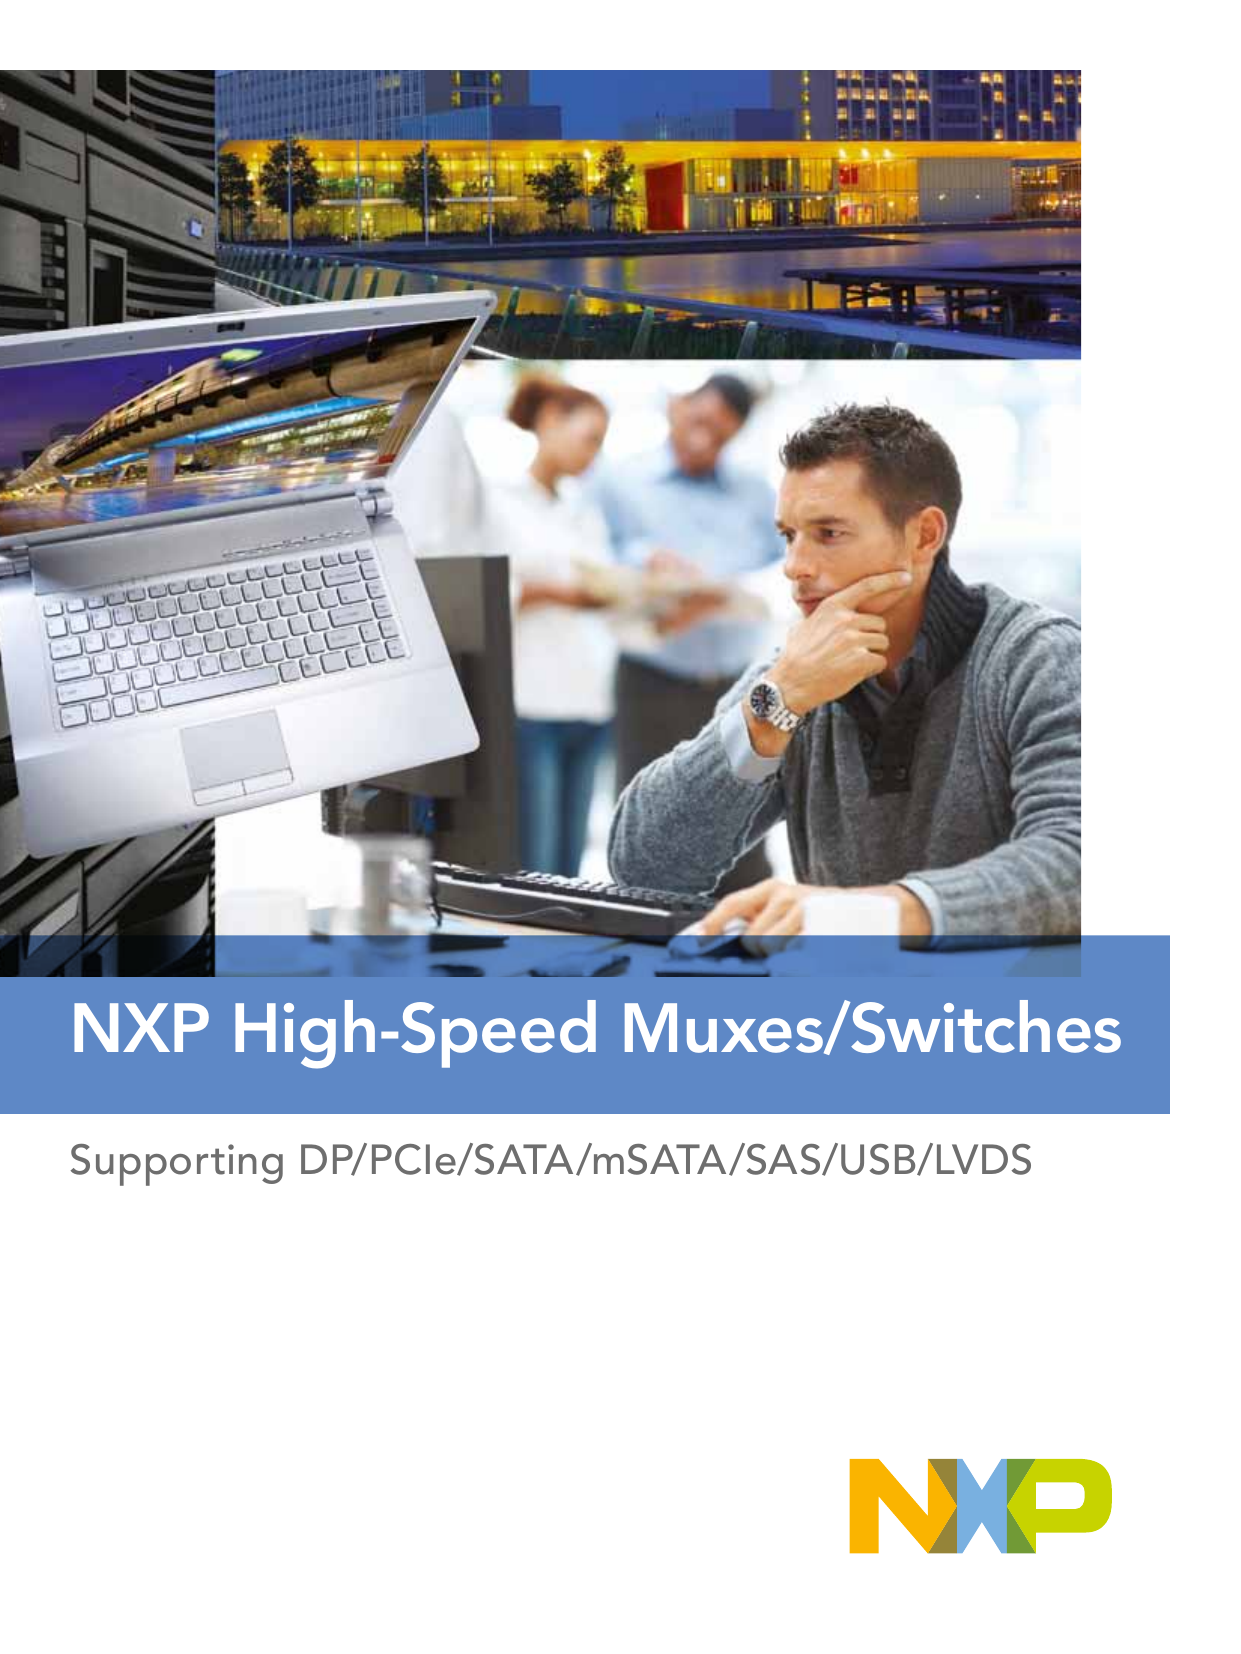 NXP High-Speed Muxes/Switches Supporting DP / PCIe / SATA